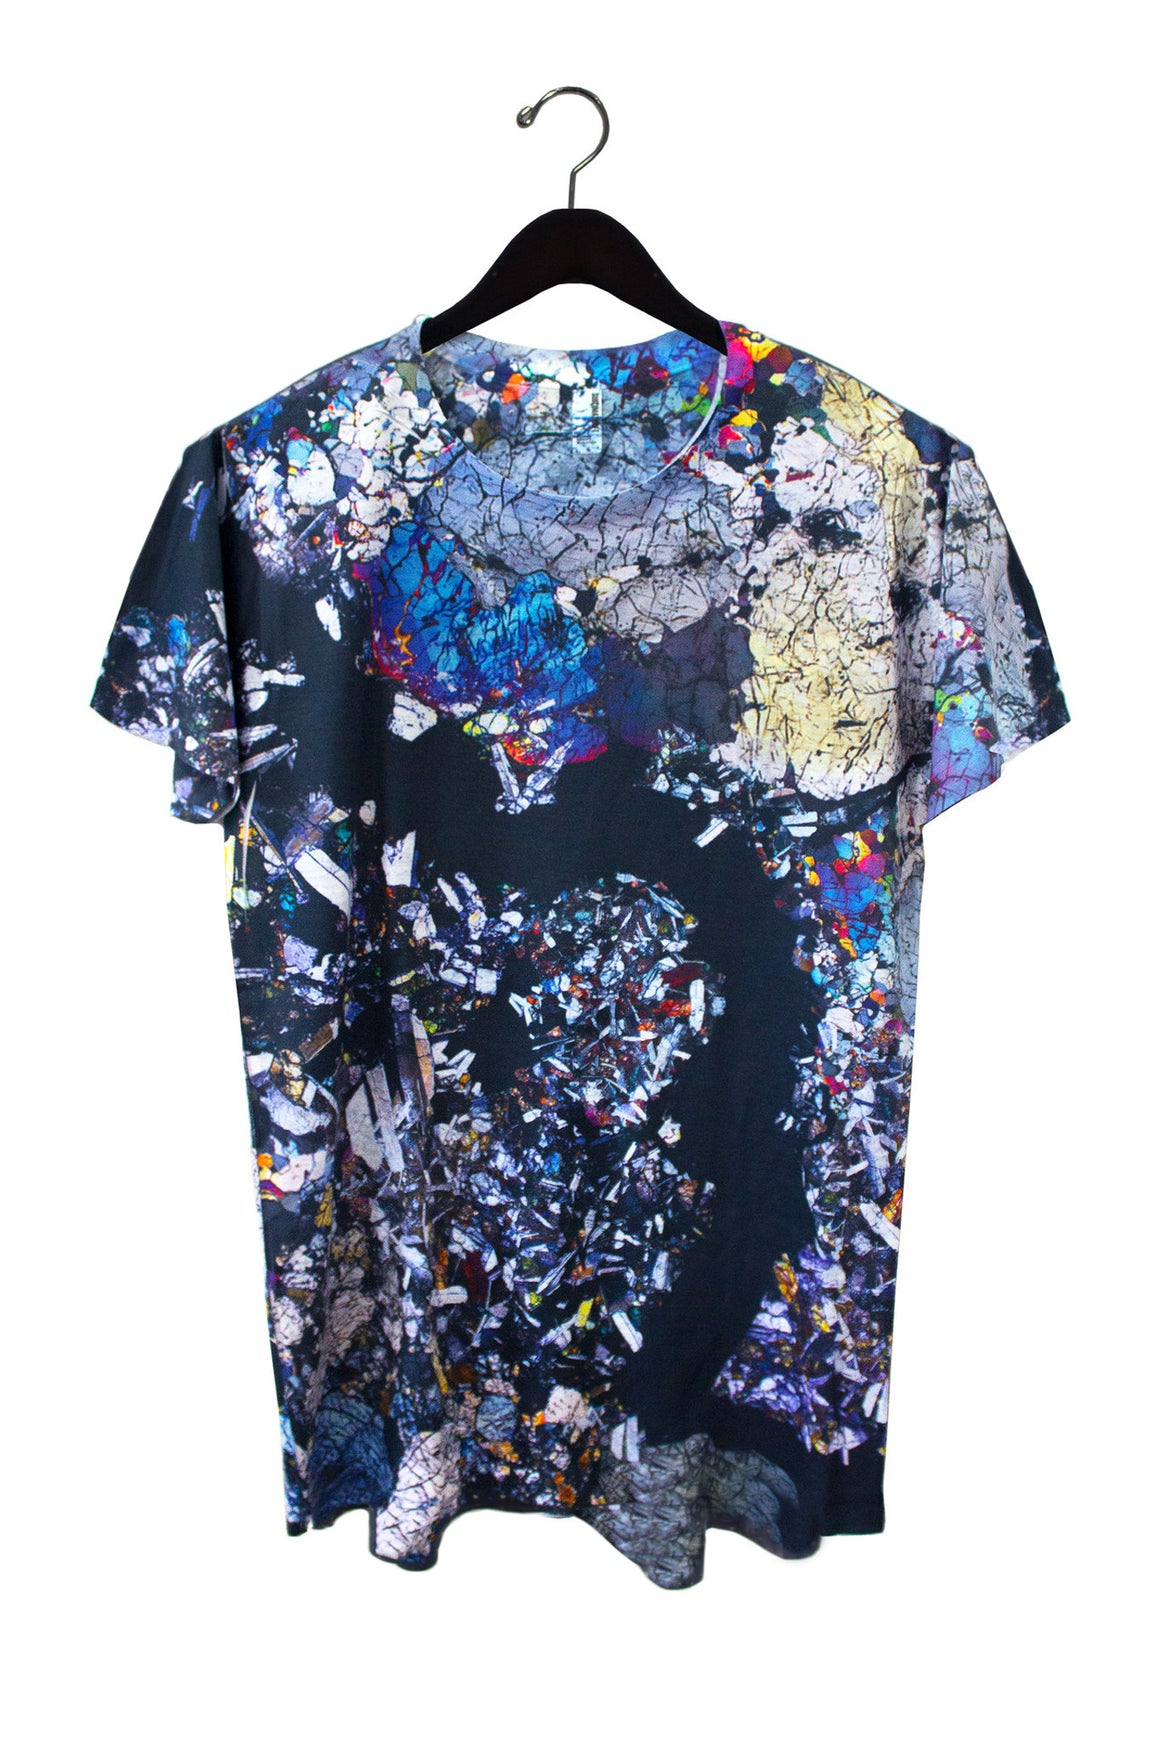 Meteorite Section Tee Men, Shadowplay New York